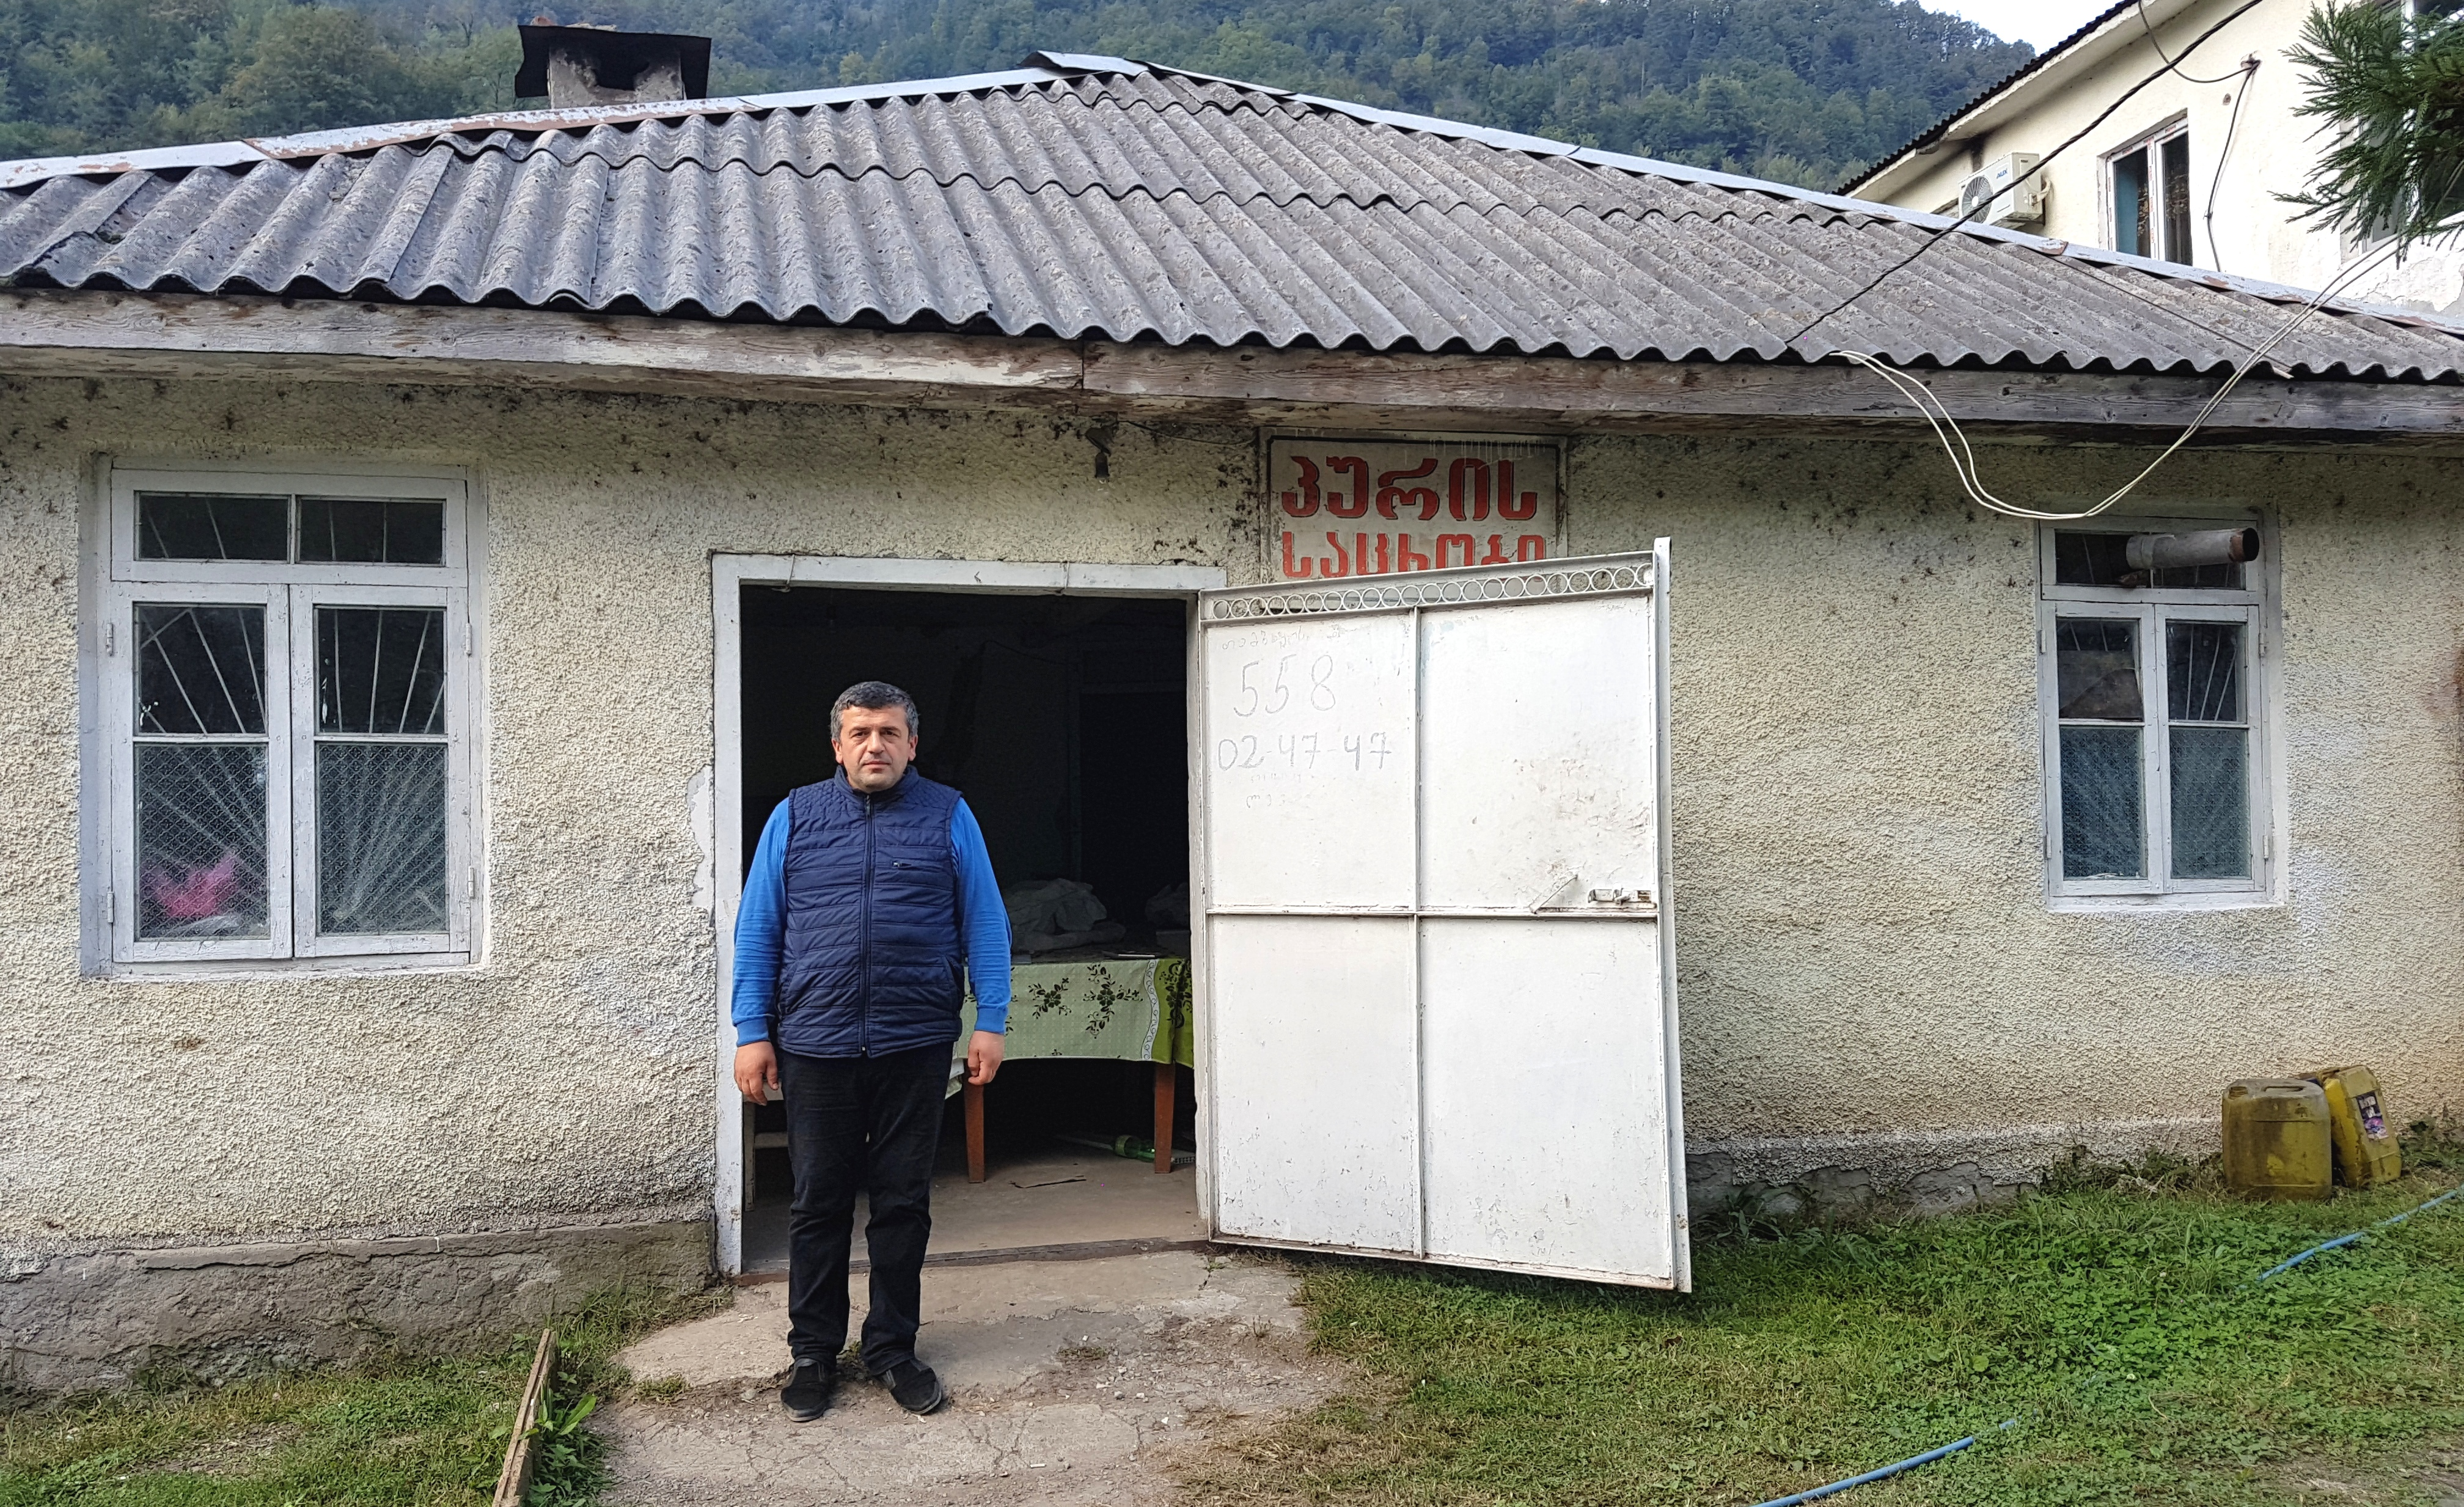 Arrangement of Bread Bakery funded in the village